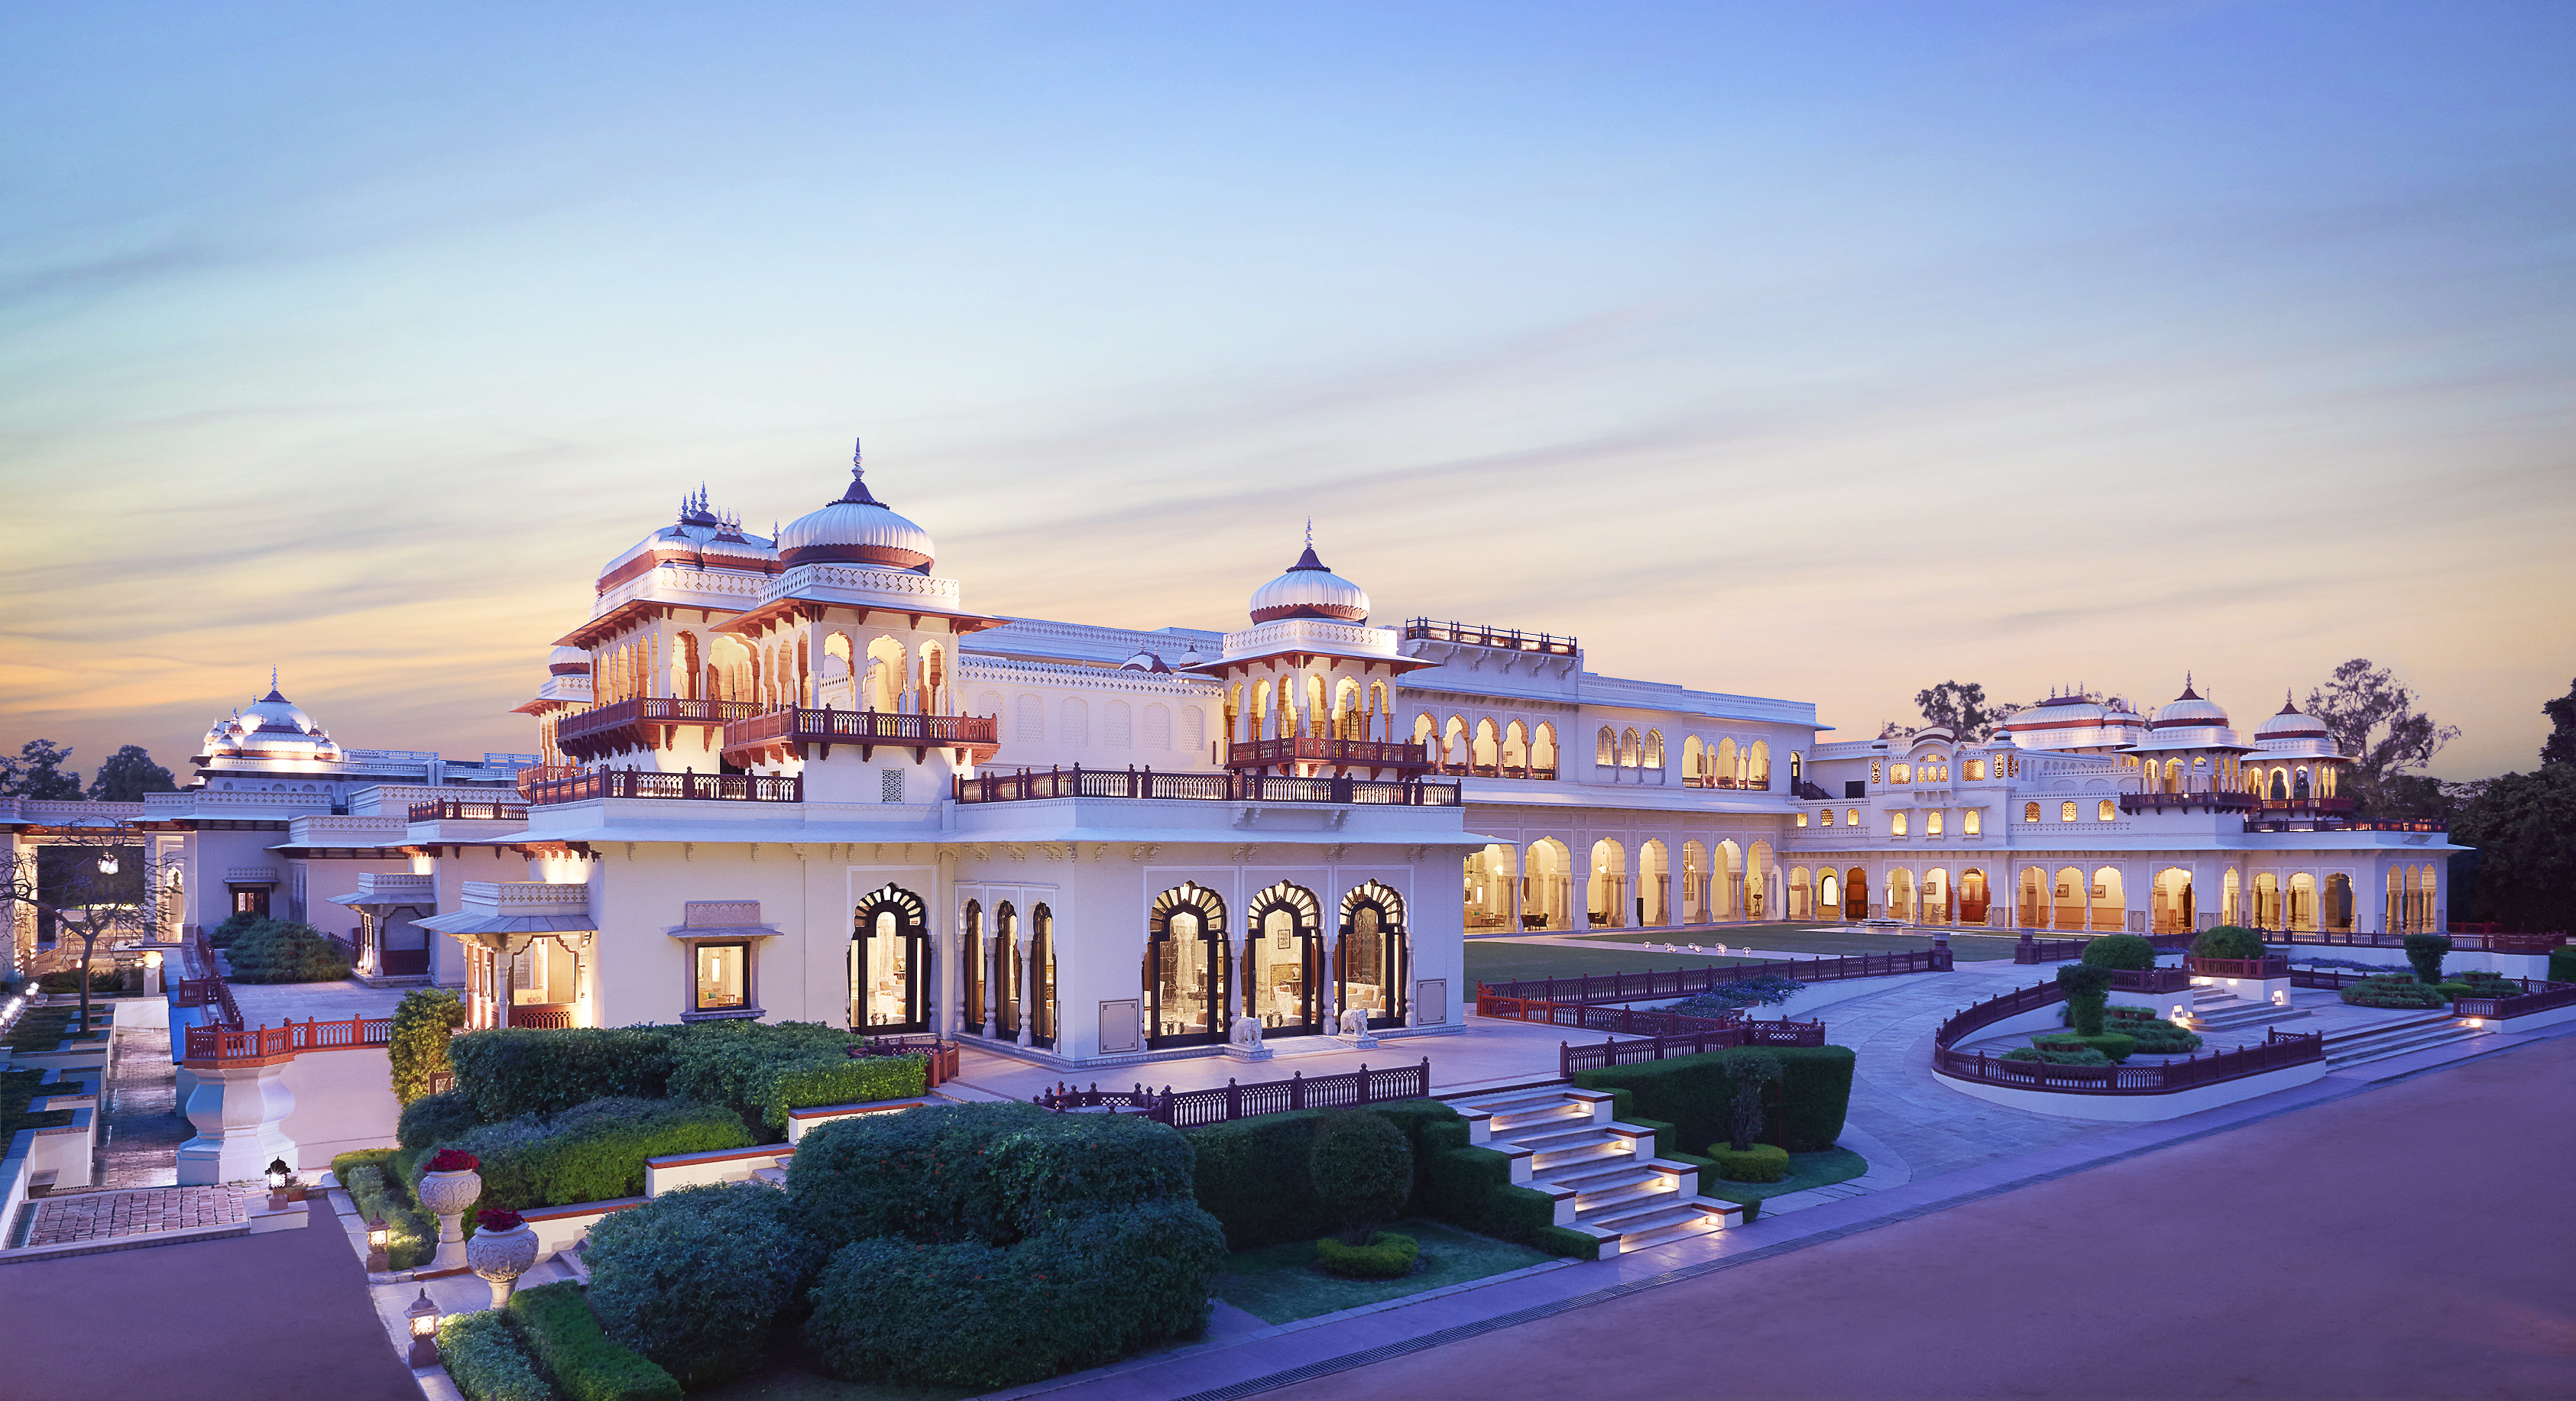 Experience Royal Hospitality at the Taj Palace Hotels in India